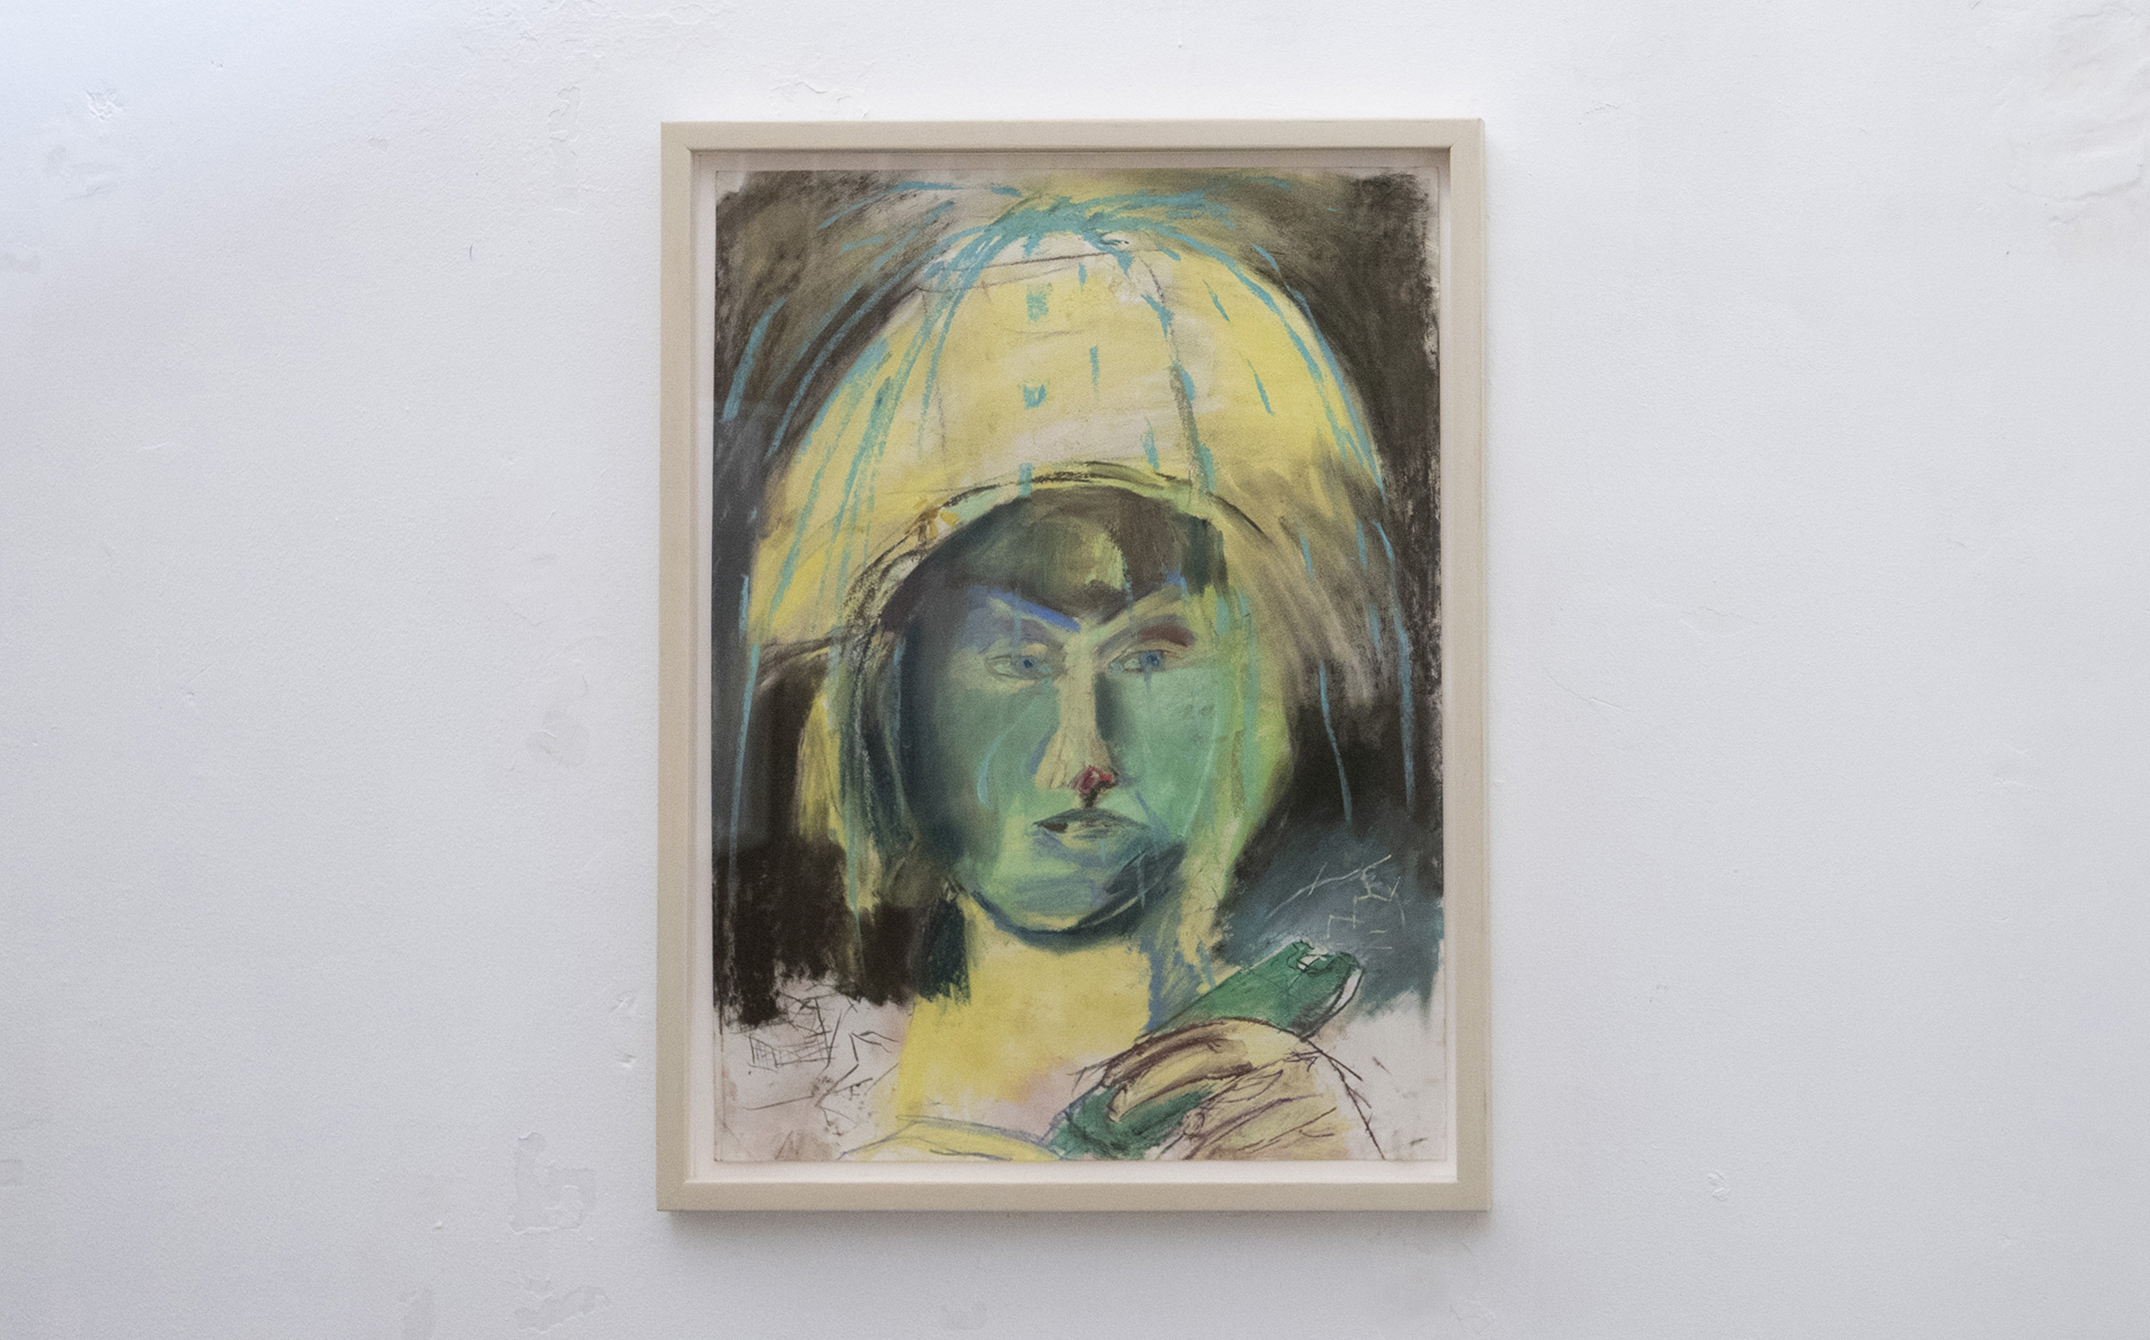 Jenny Gagalka, Beaux Mendes, William Wasserman,  Amalia with MultiGuard stun gun in green,  2018, pastel on paper, artist's frame, 26.25 × 20.25 in